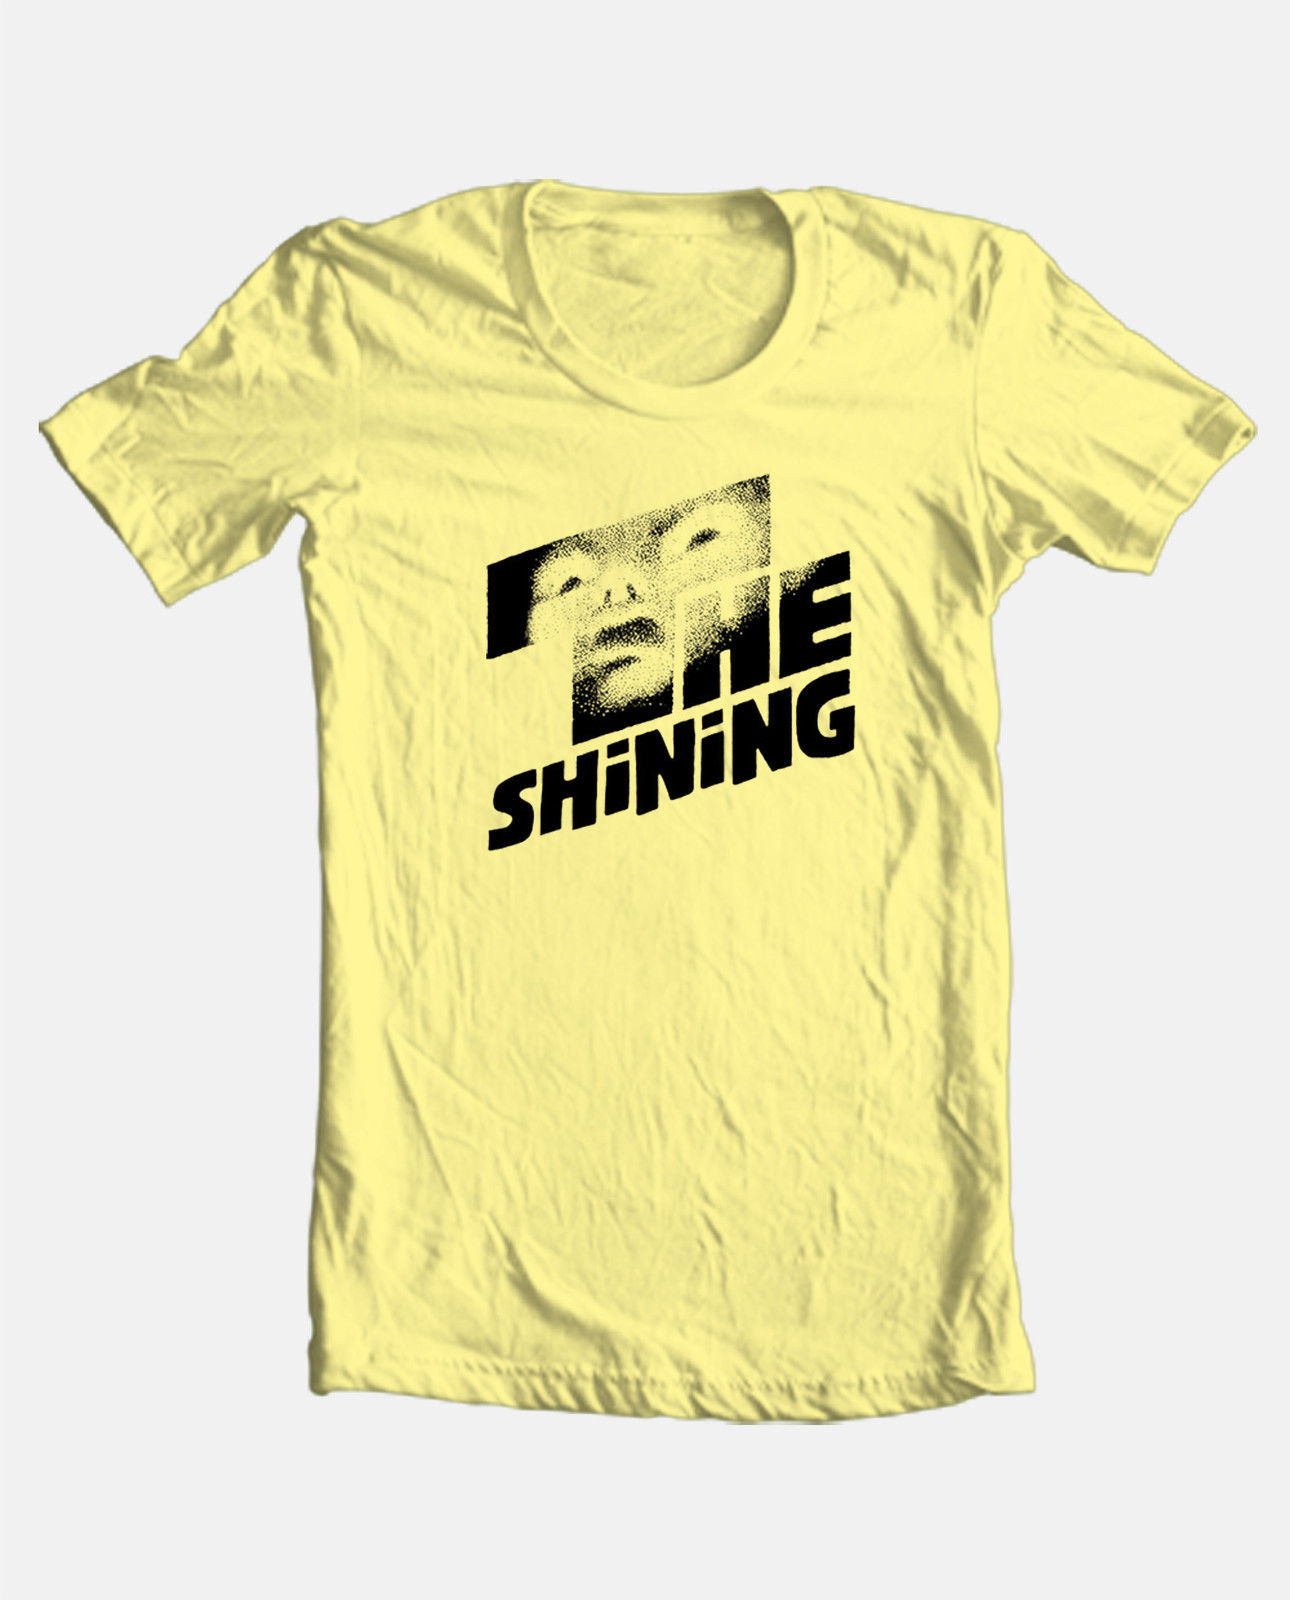 The Shining T-shirt retro 70's Steven King classic horror movie 100% cotton tee